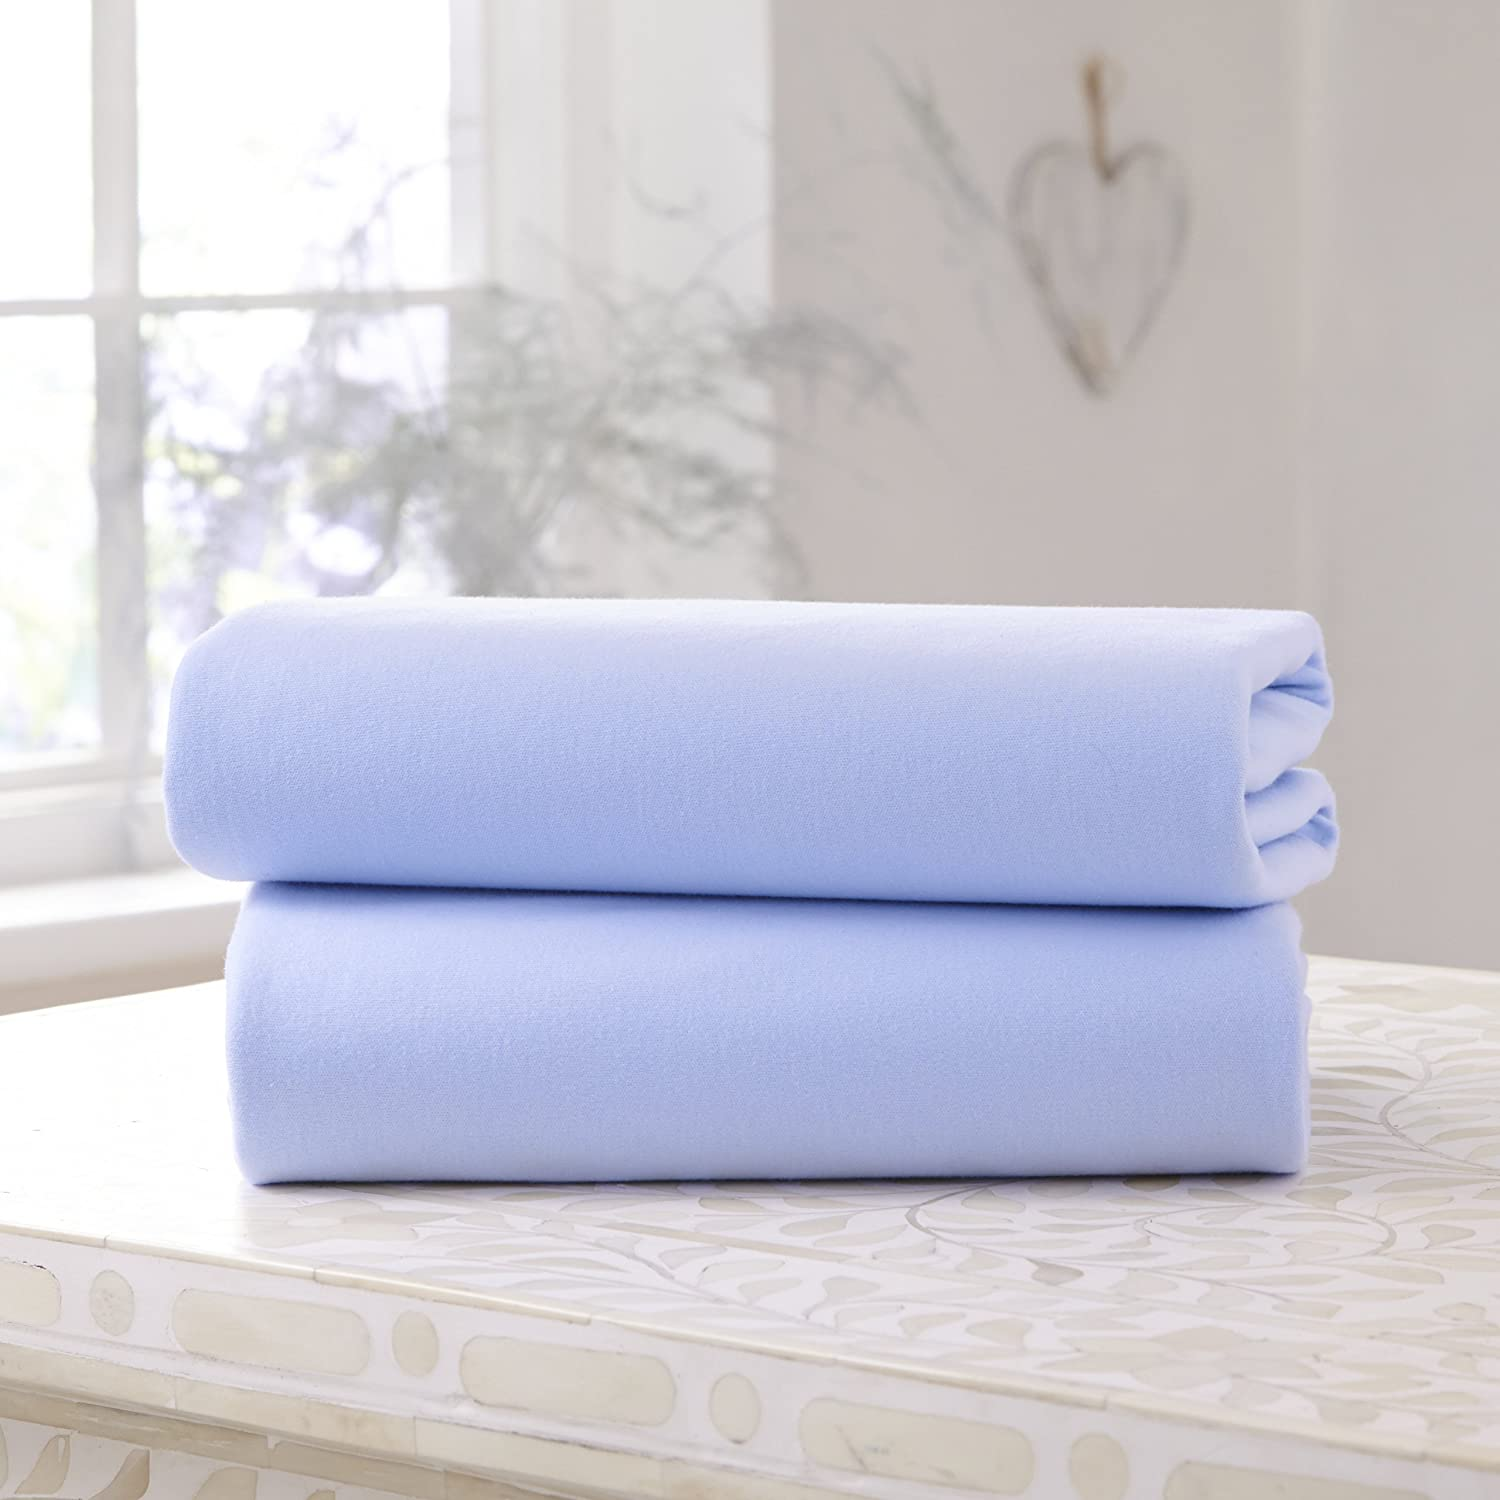 Clair de Lune Cot Bed Cotton Jersey Fitted Sheets (Pack of 2, Blue) 31% OFF £4.97 @ Amazon